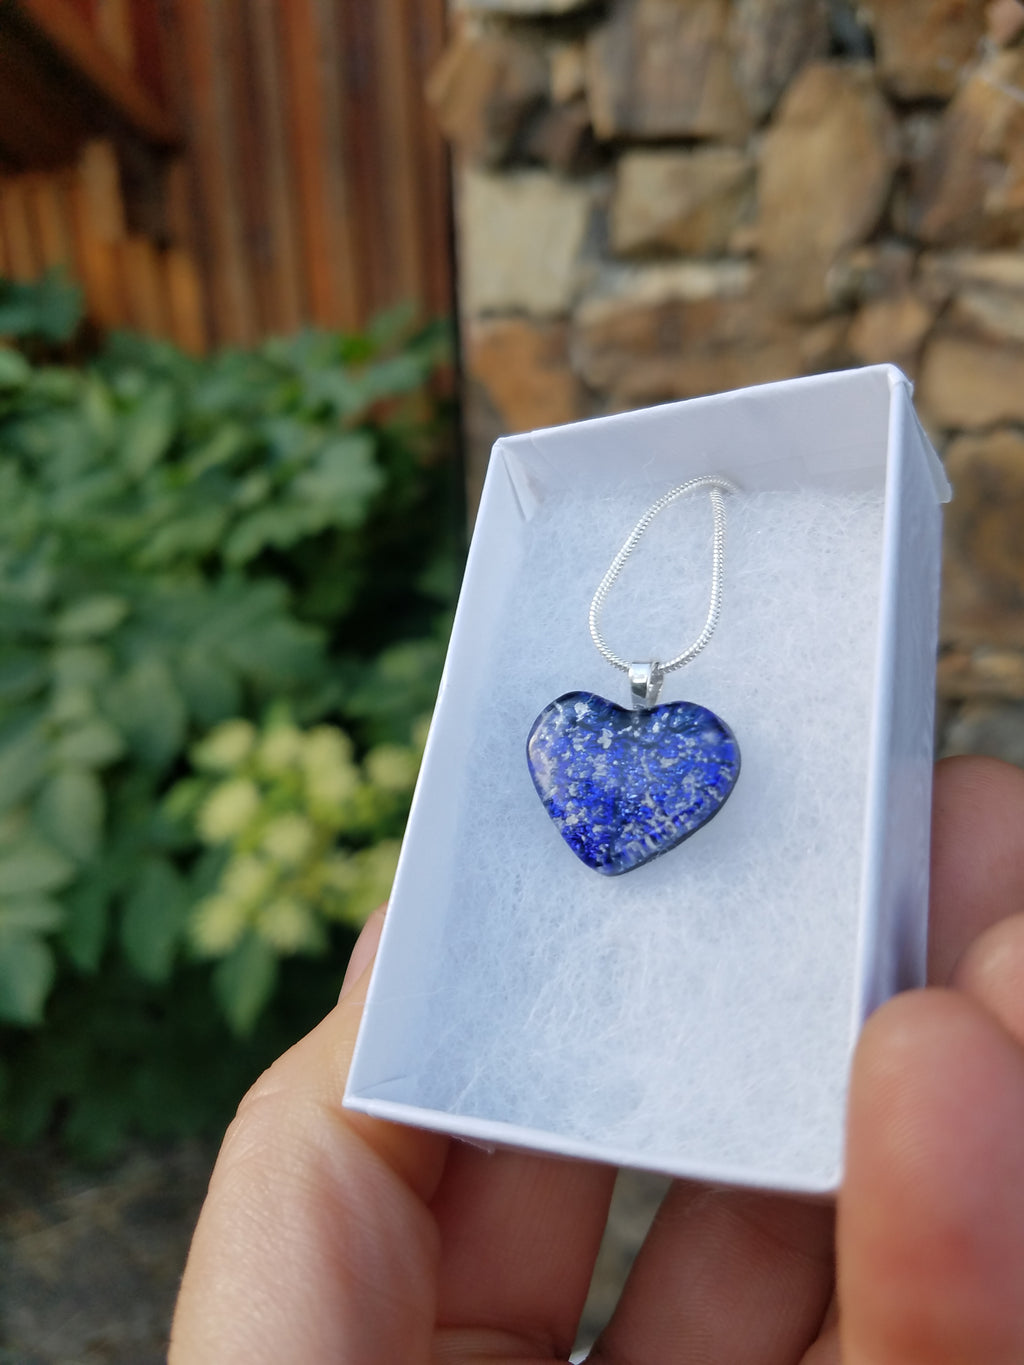 tiny cremation glass heart in a box in a hand Handmade Cremation Jewelry Pendants, Rings and Bracelets. Ashes in Glass Handmade . Sympathy Gifts, Mourning Jewelry. Cremation Ashes Infused in Glass. Quality Sterling Silver and 14k Gold USA Handmade by Infusion Glass  Human & Pet Cremation Ash Remembrance Urns